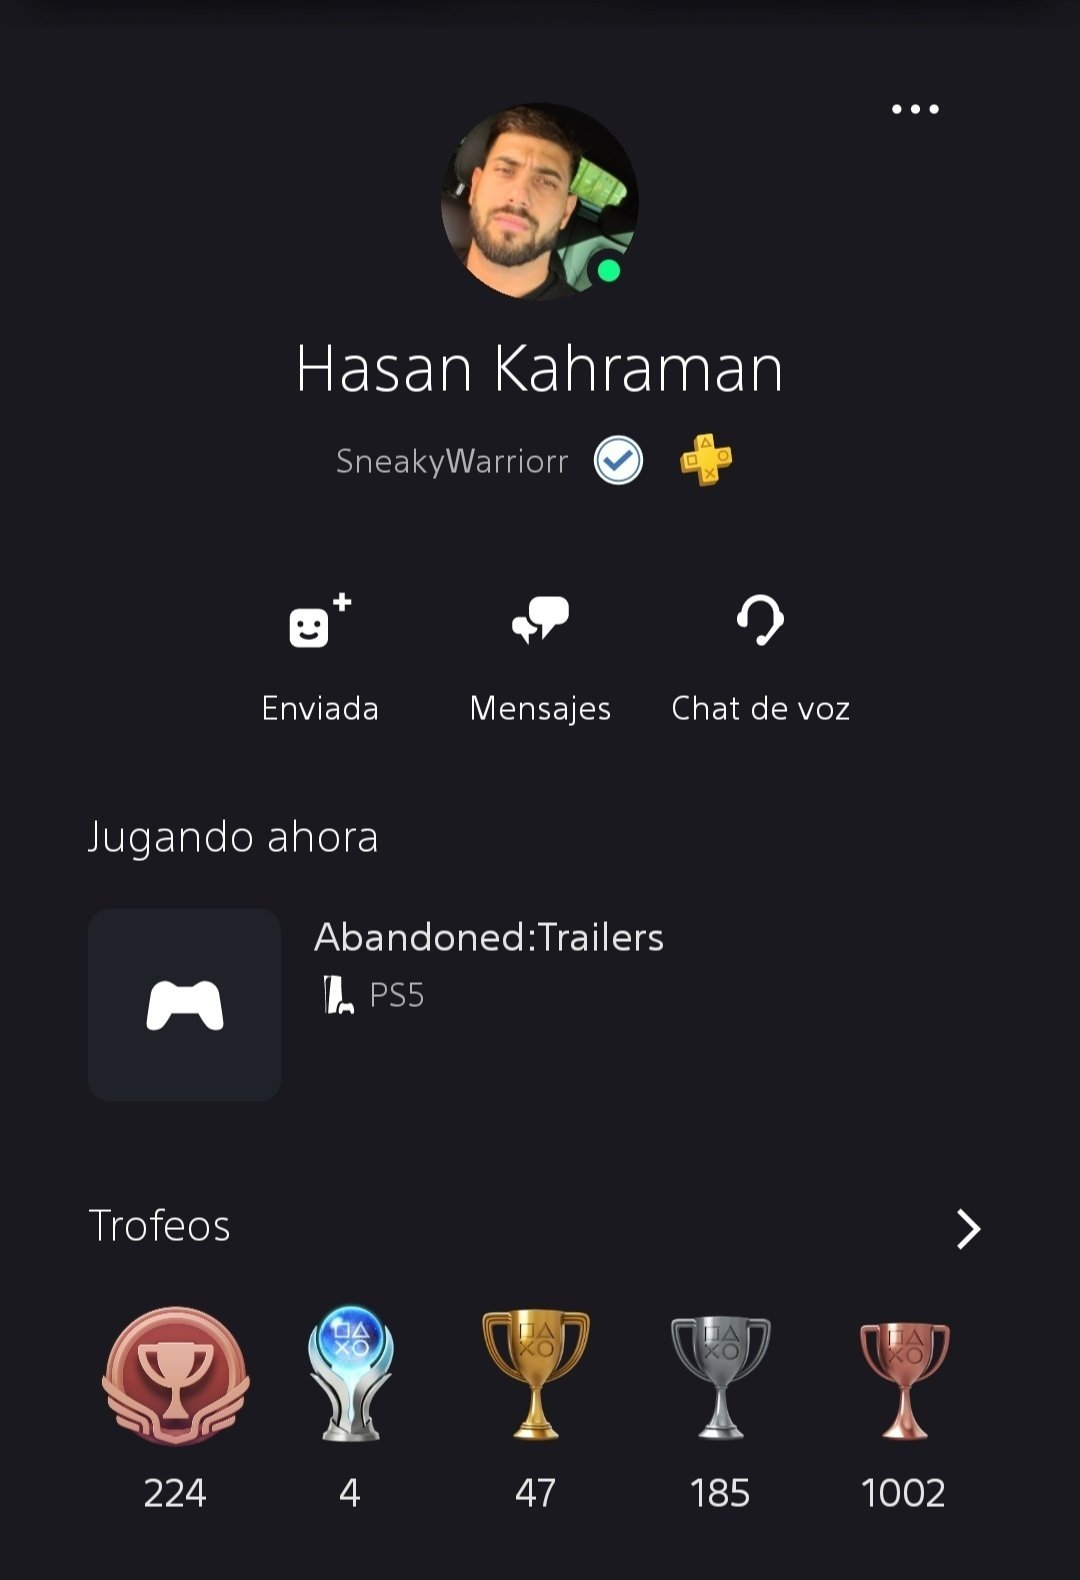 """Hasan Kahraman's PSN account nicknamed """"SneakyWarrior"""" with 1238 trophies in total"""